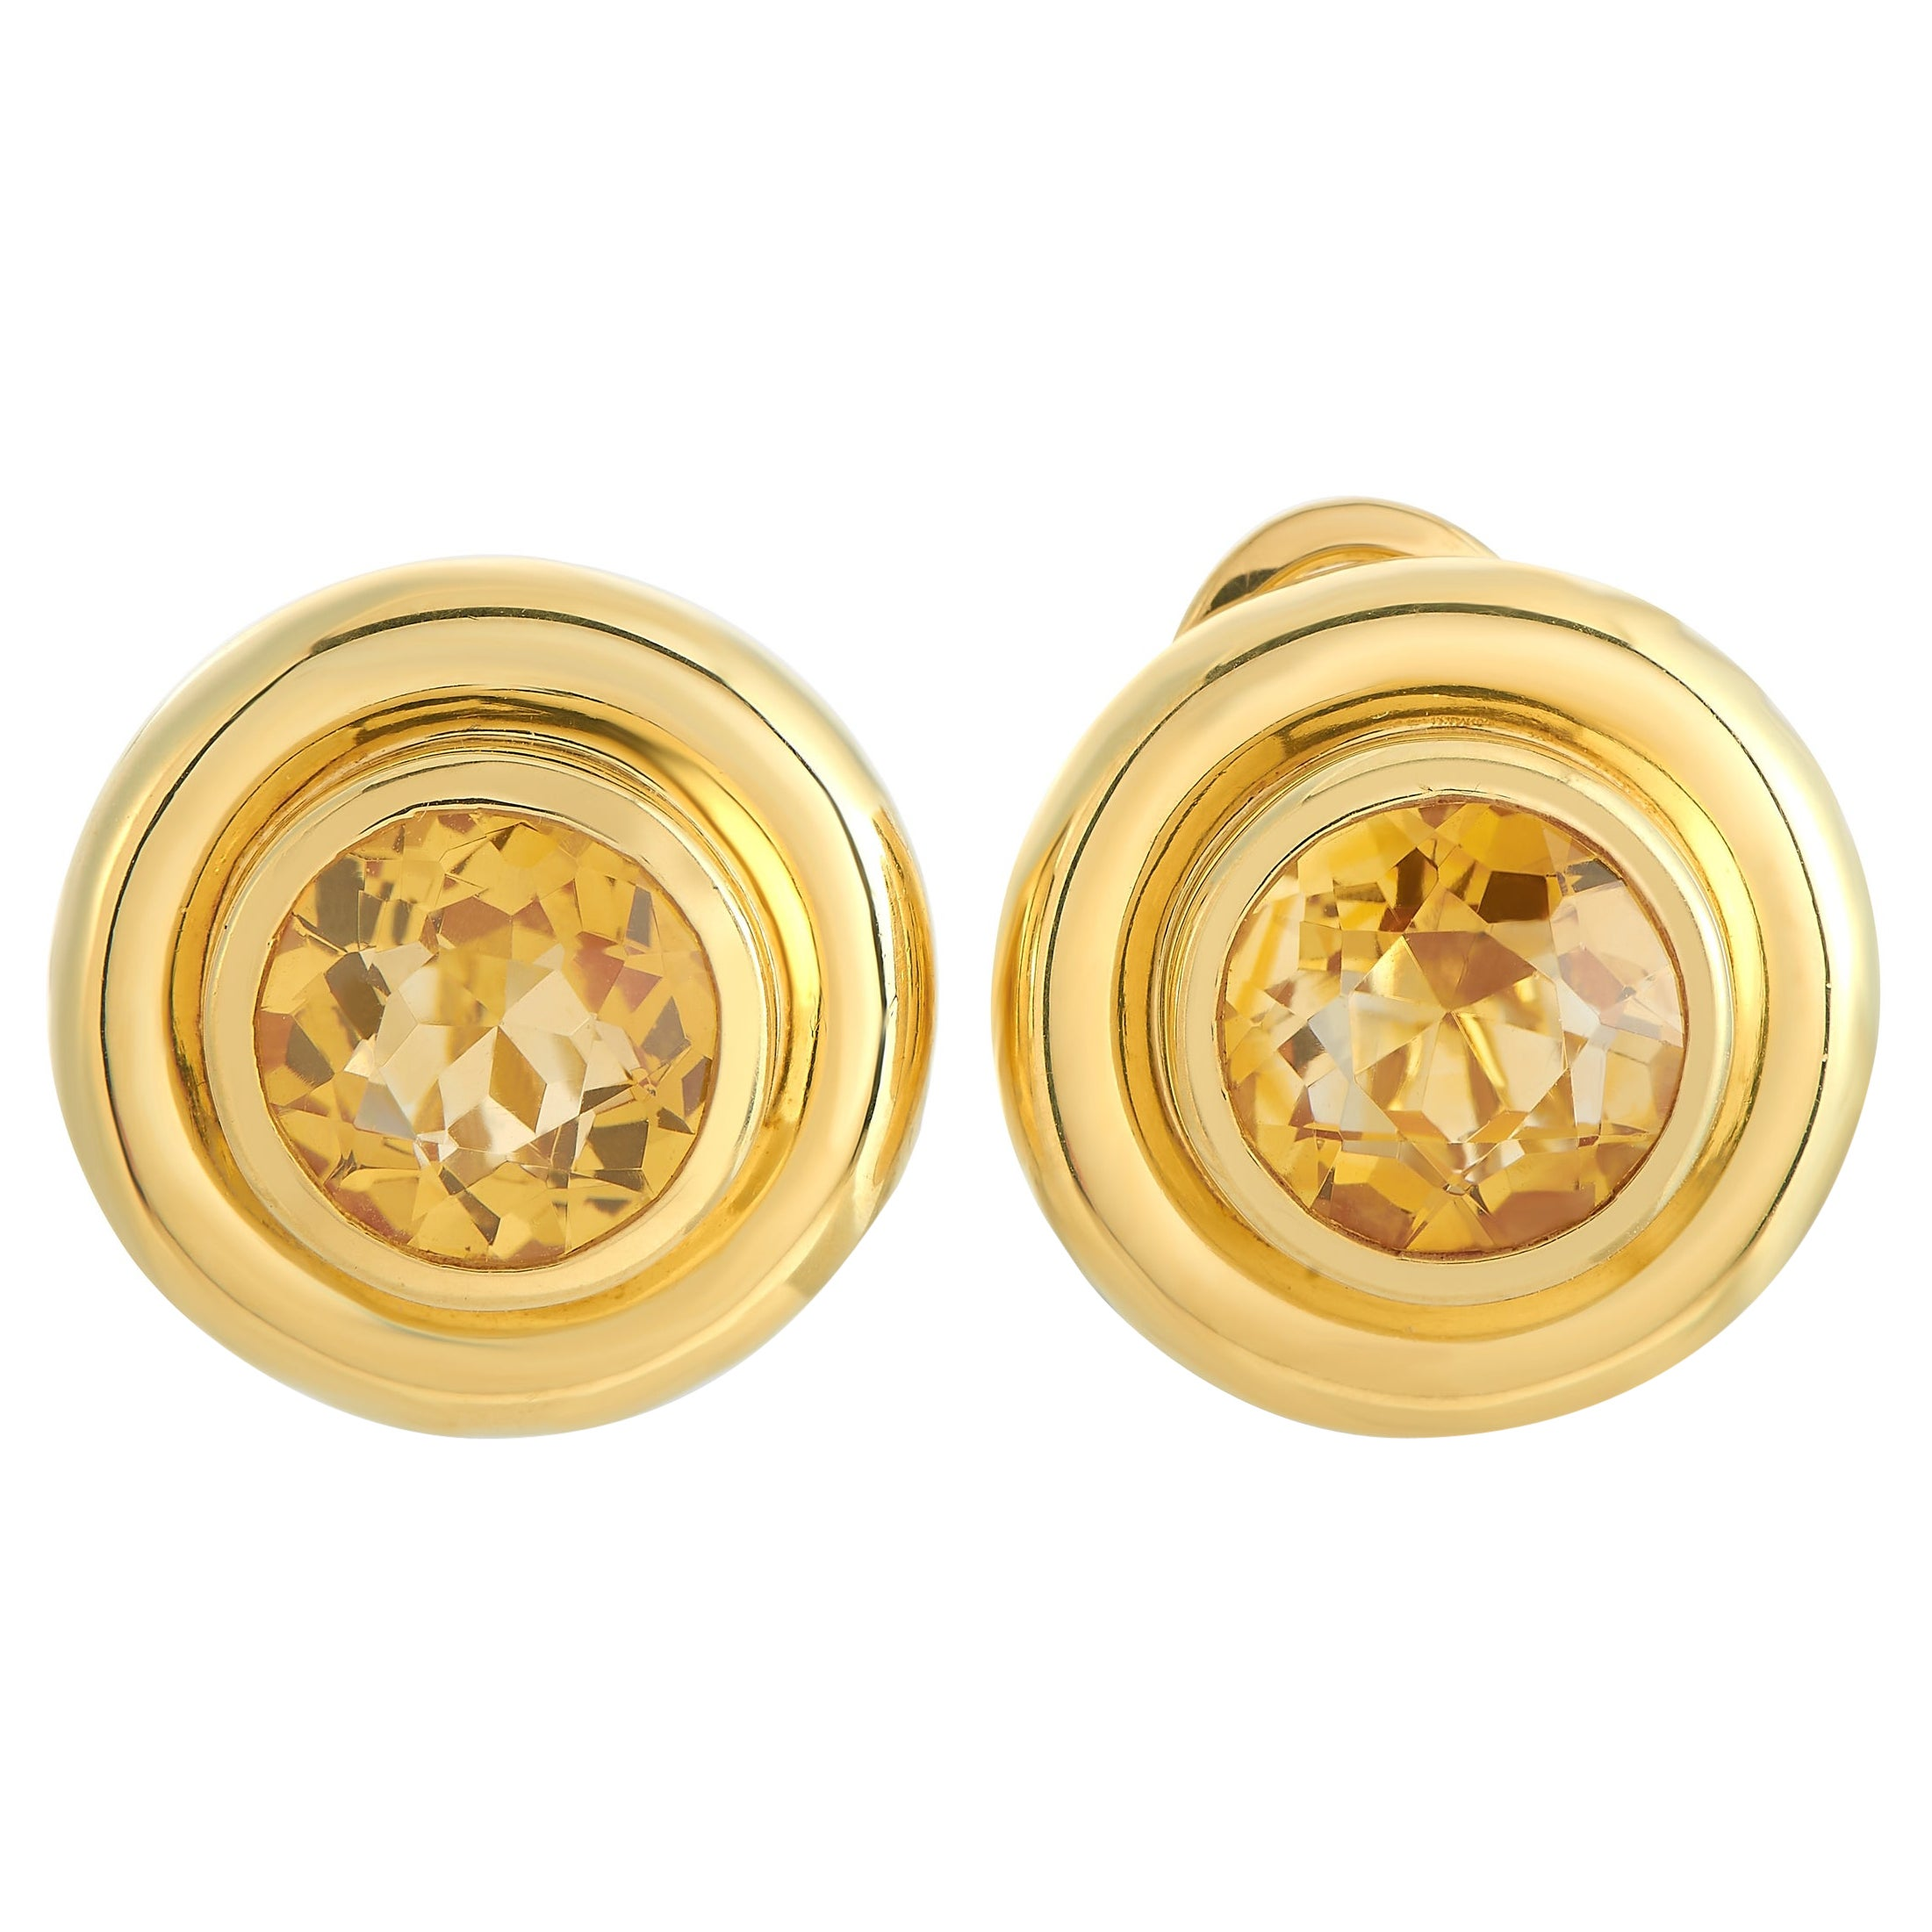 Tiffany & Co. Paloma Picasso 18K Yellow Gold Citrine Earrings